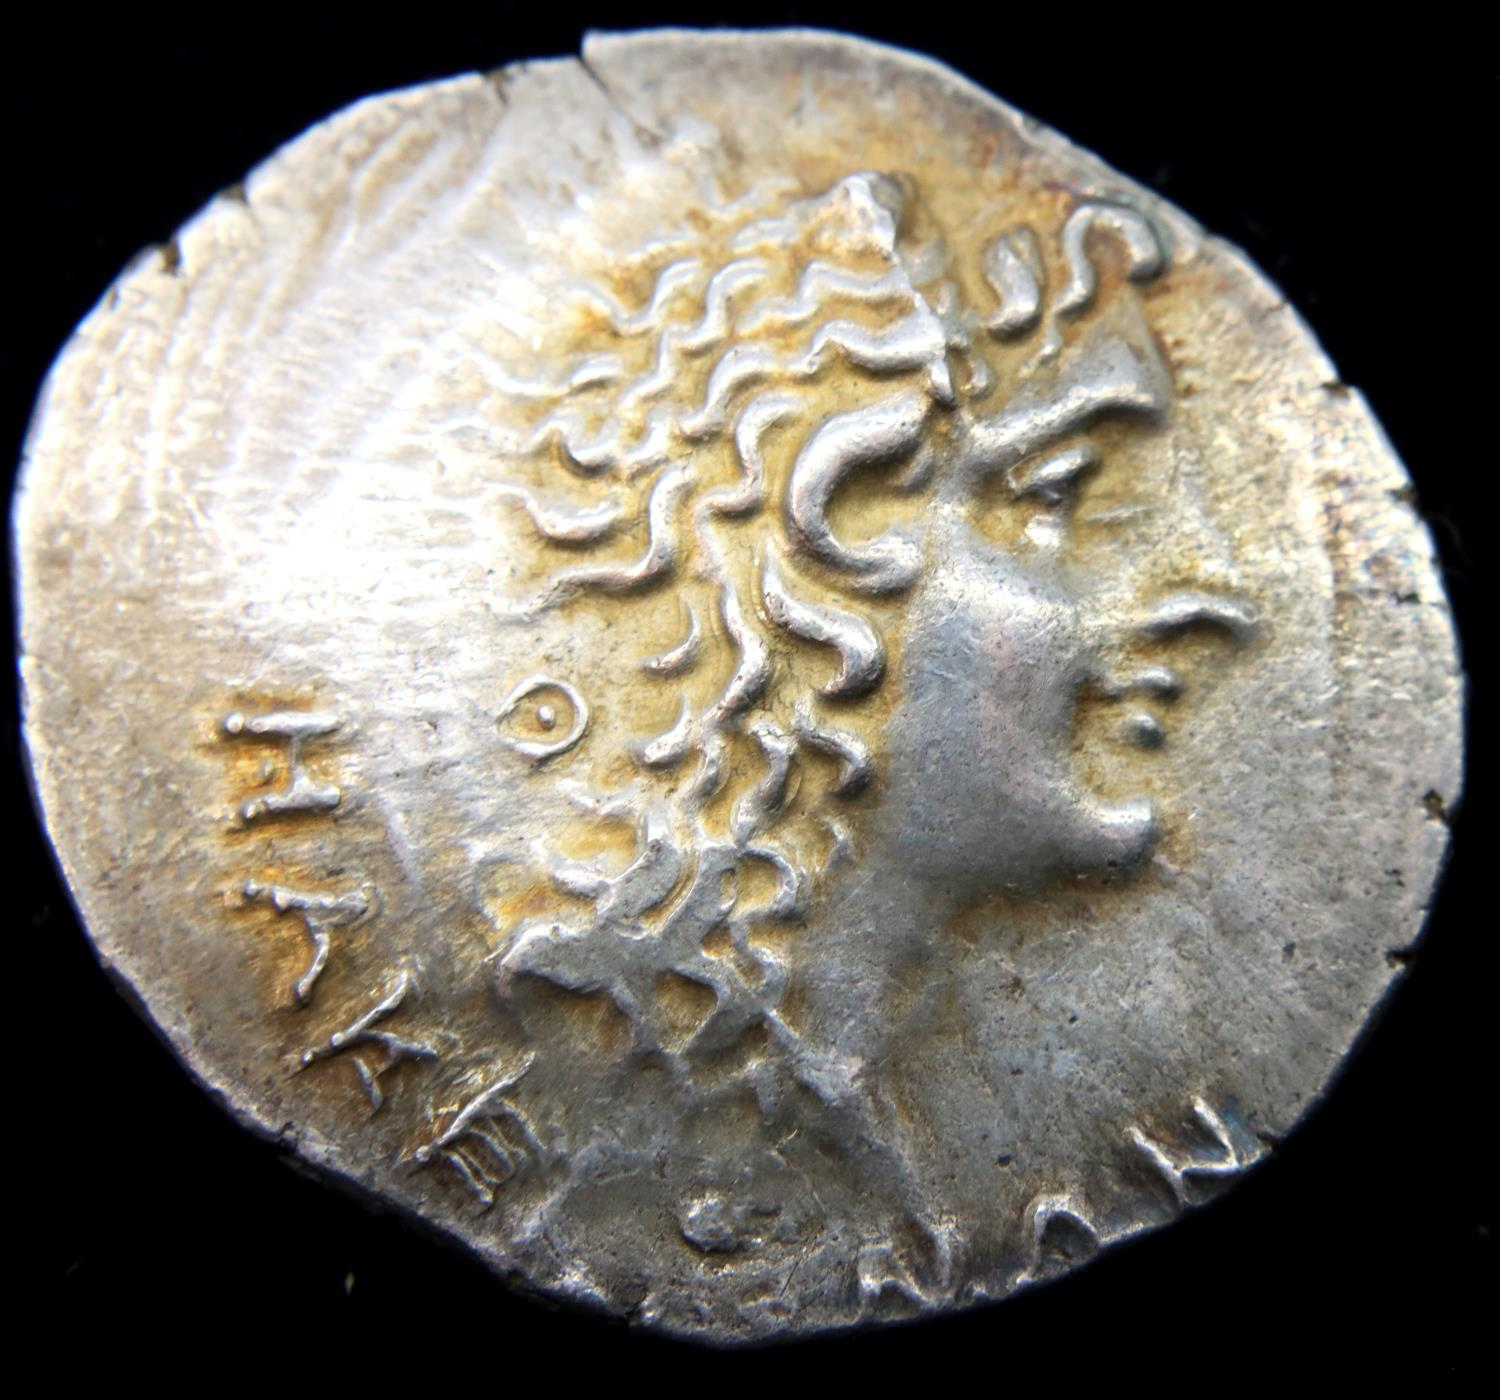 Silver tetradrachm of Alexander The Great, heavy gauge 16.7g. P&P Group 1 (£14+VAT for the first lot - Image 2 of 2